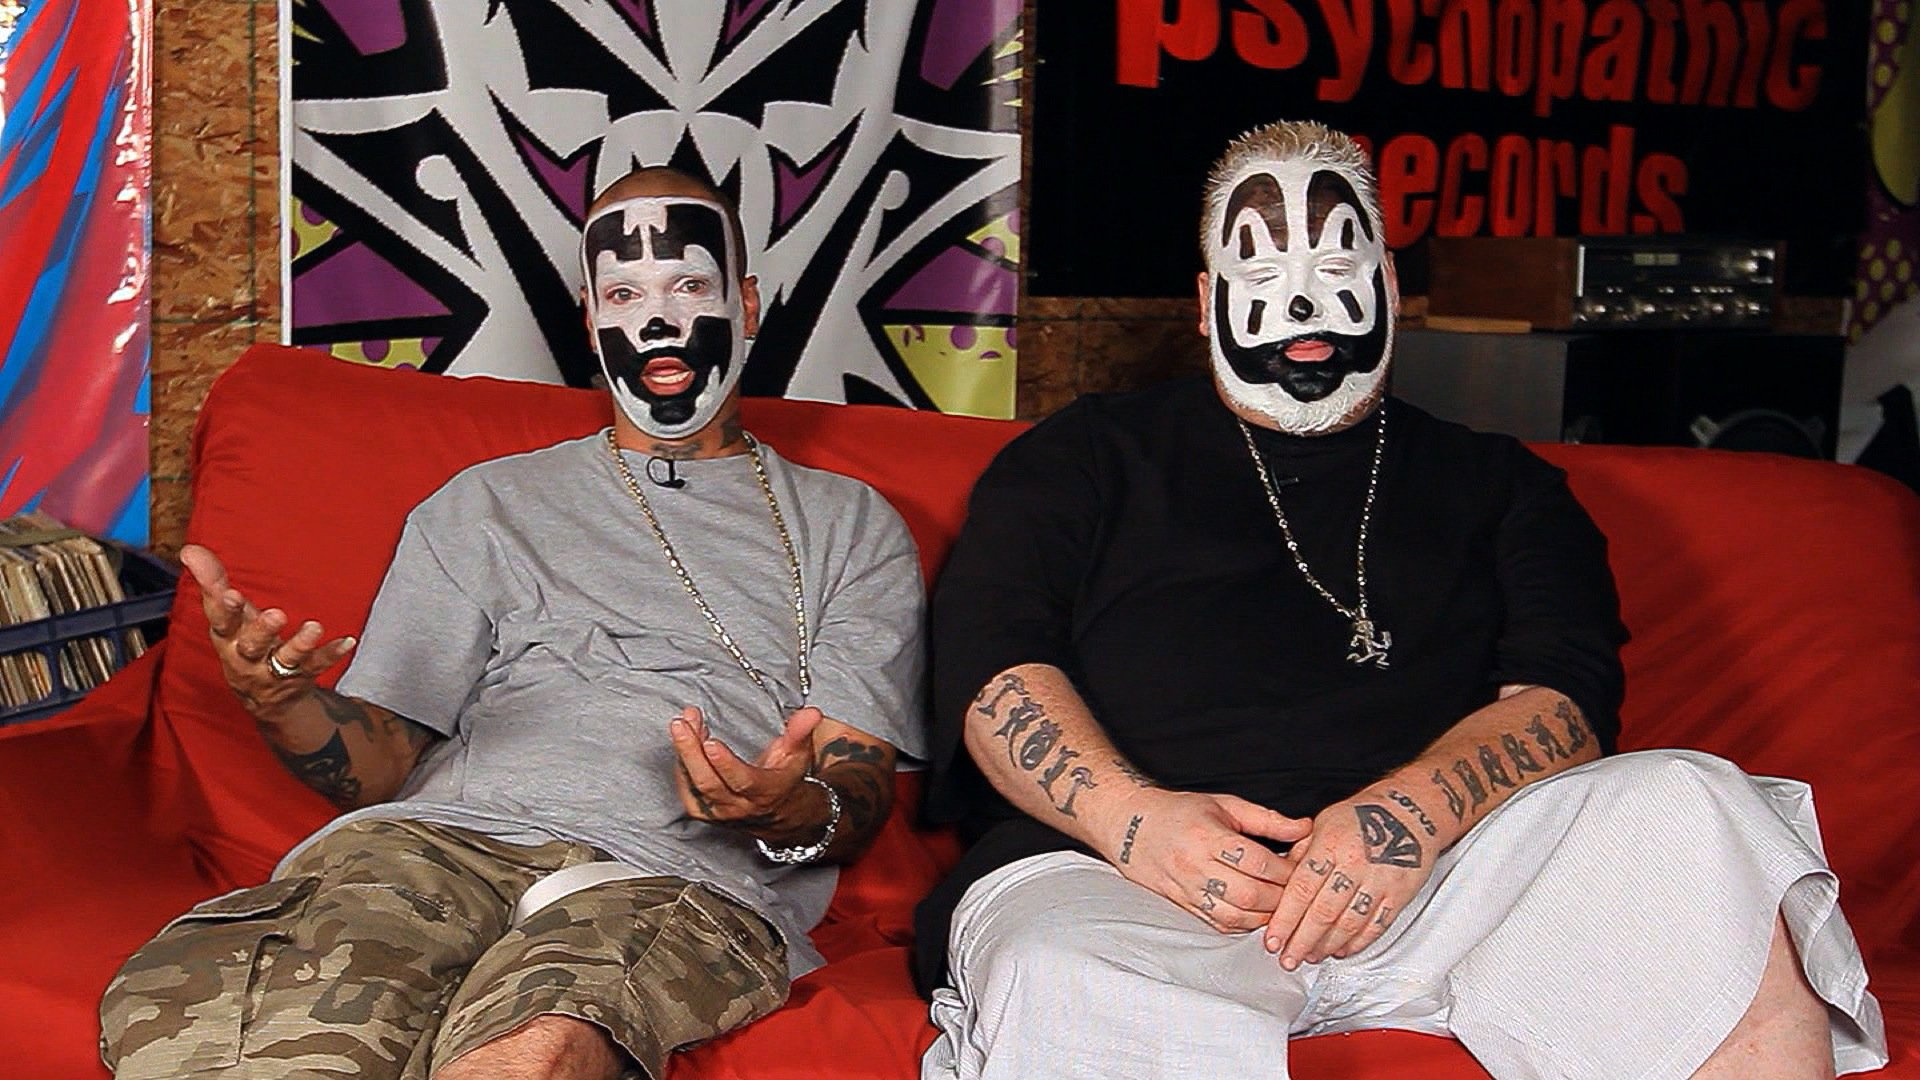 Insane Clown Posse Sues Fbi For Labeling Juggalo Fans A Gang